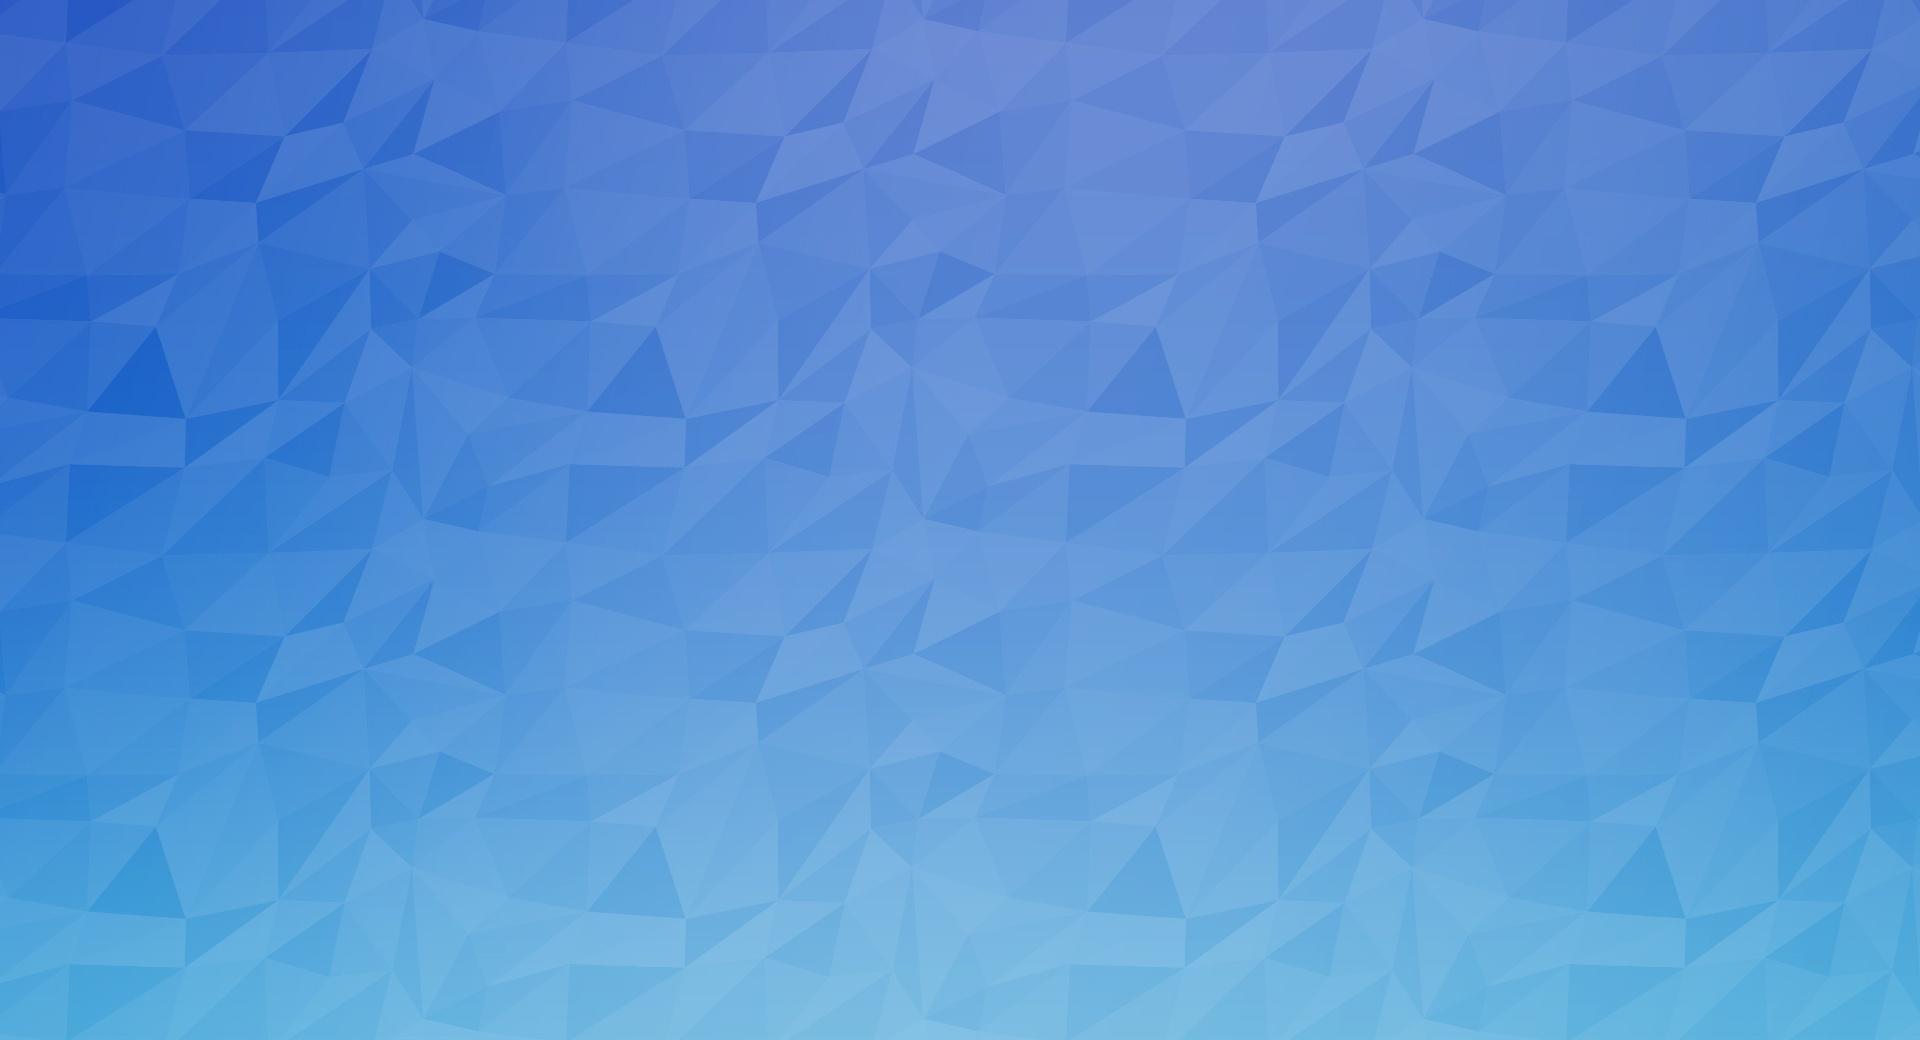 Polygon Blue wallpapers HD quality